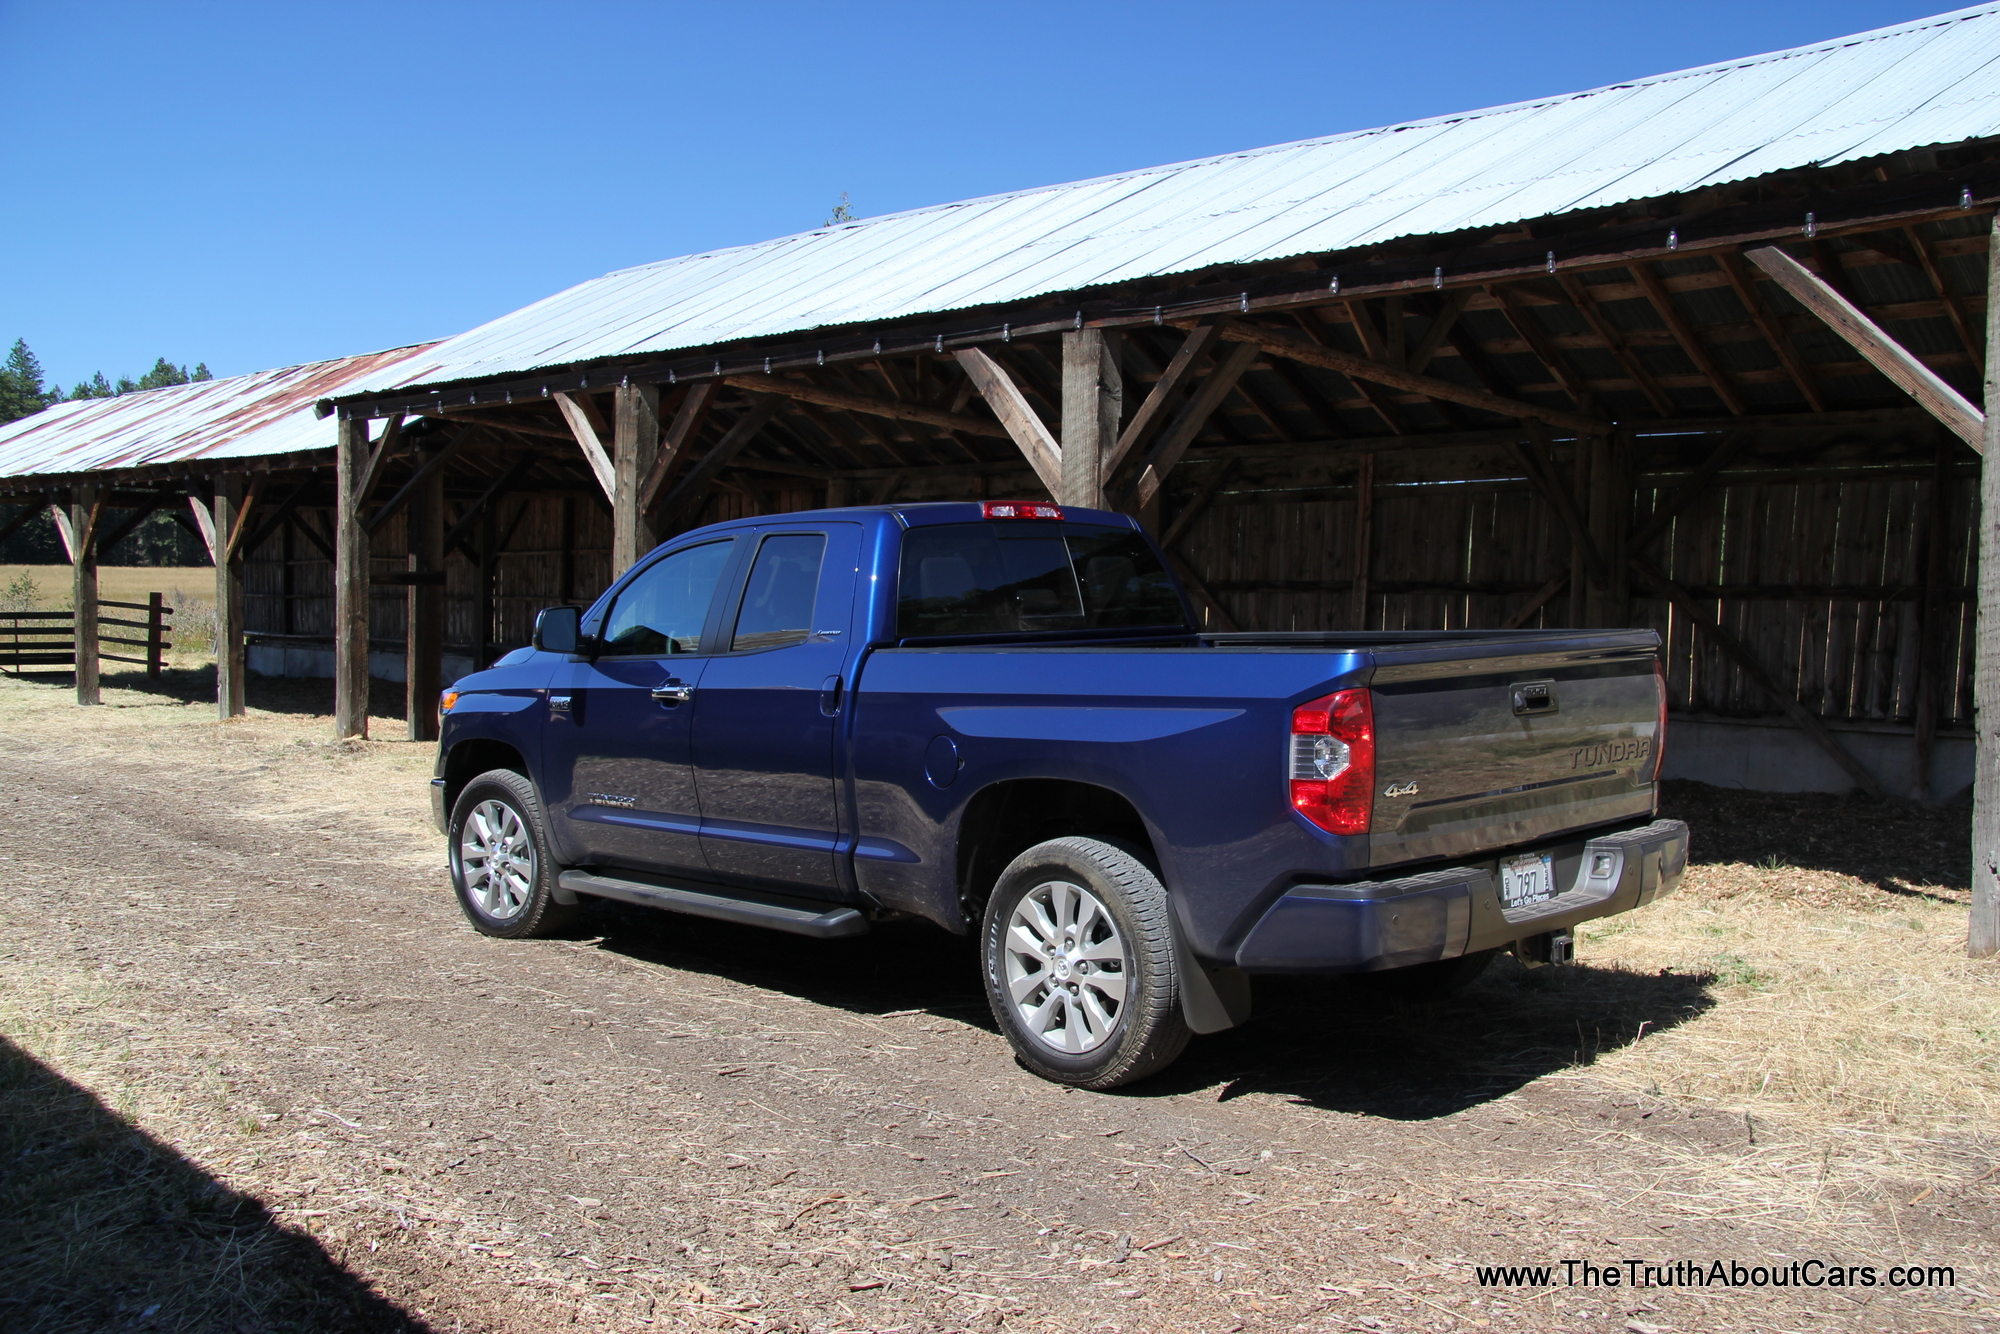 Pre Production Review 2014 Toyota Tundra With Video The Truth Need 57 F100 Custom Cab Wiring Diagram Ford Truck Enthusiasts Exterior Picture Courtesy Of Alex L Dykes